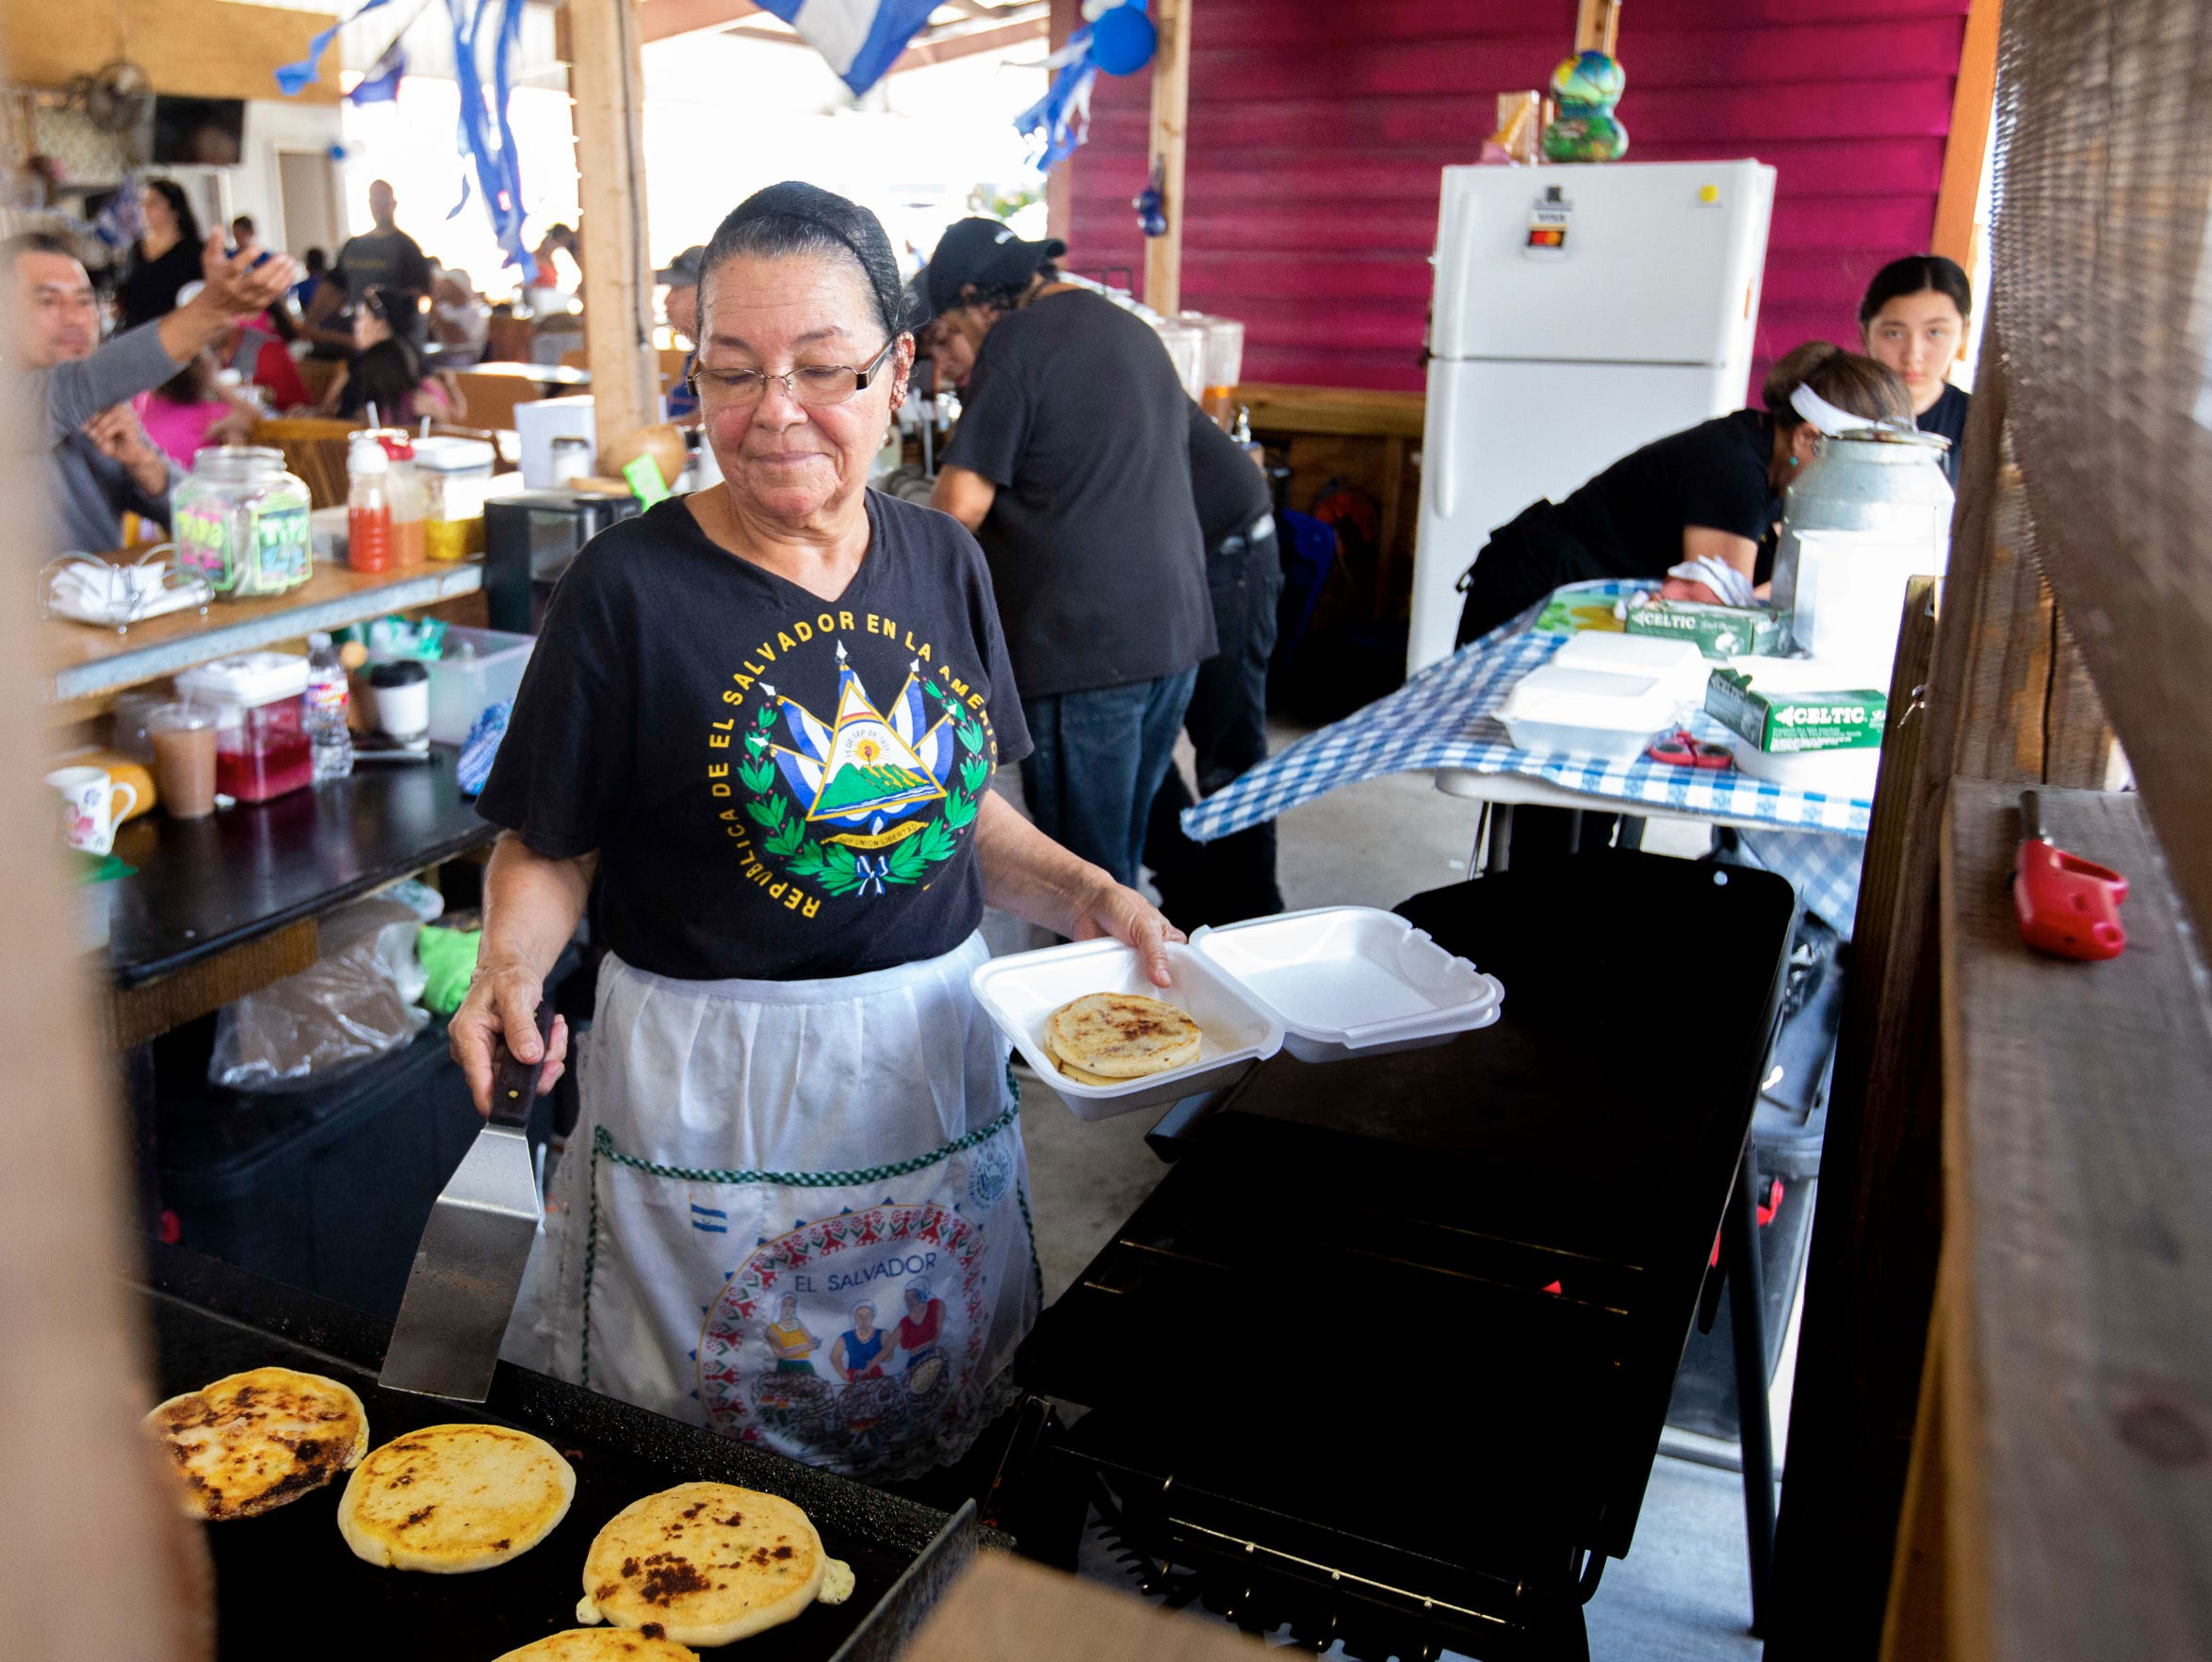 Ana Isabel Palencia, 67, prepares pupusas at Pupuseria La Milpa, a family business at the West Bank Flea Market.